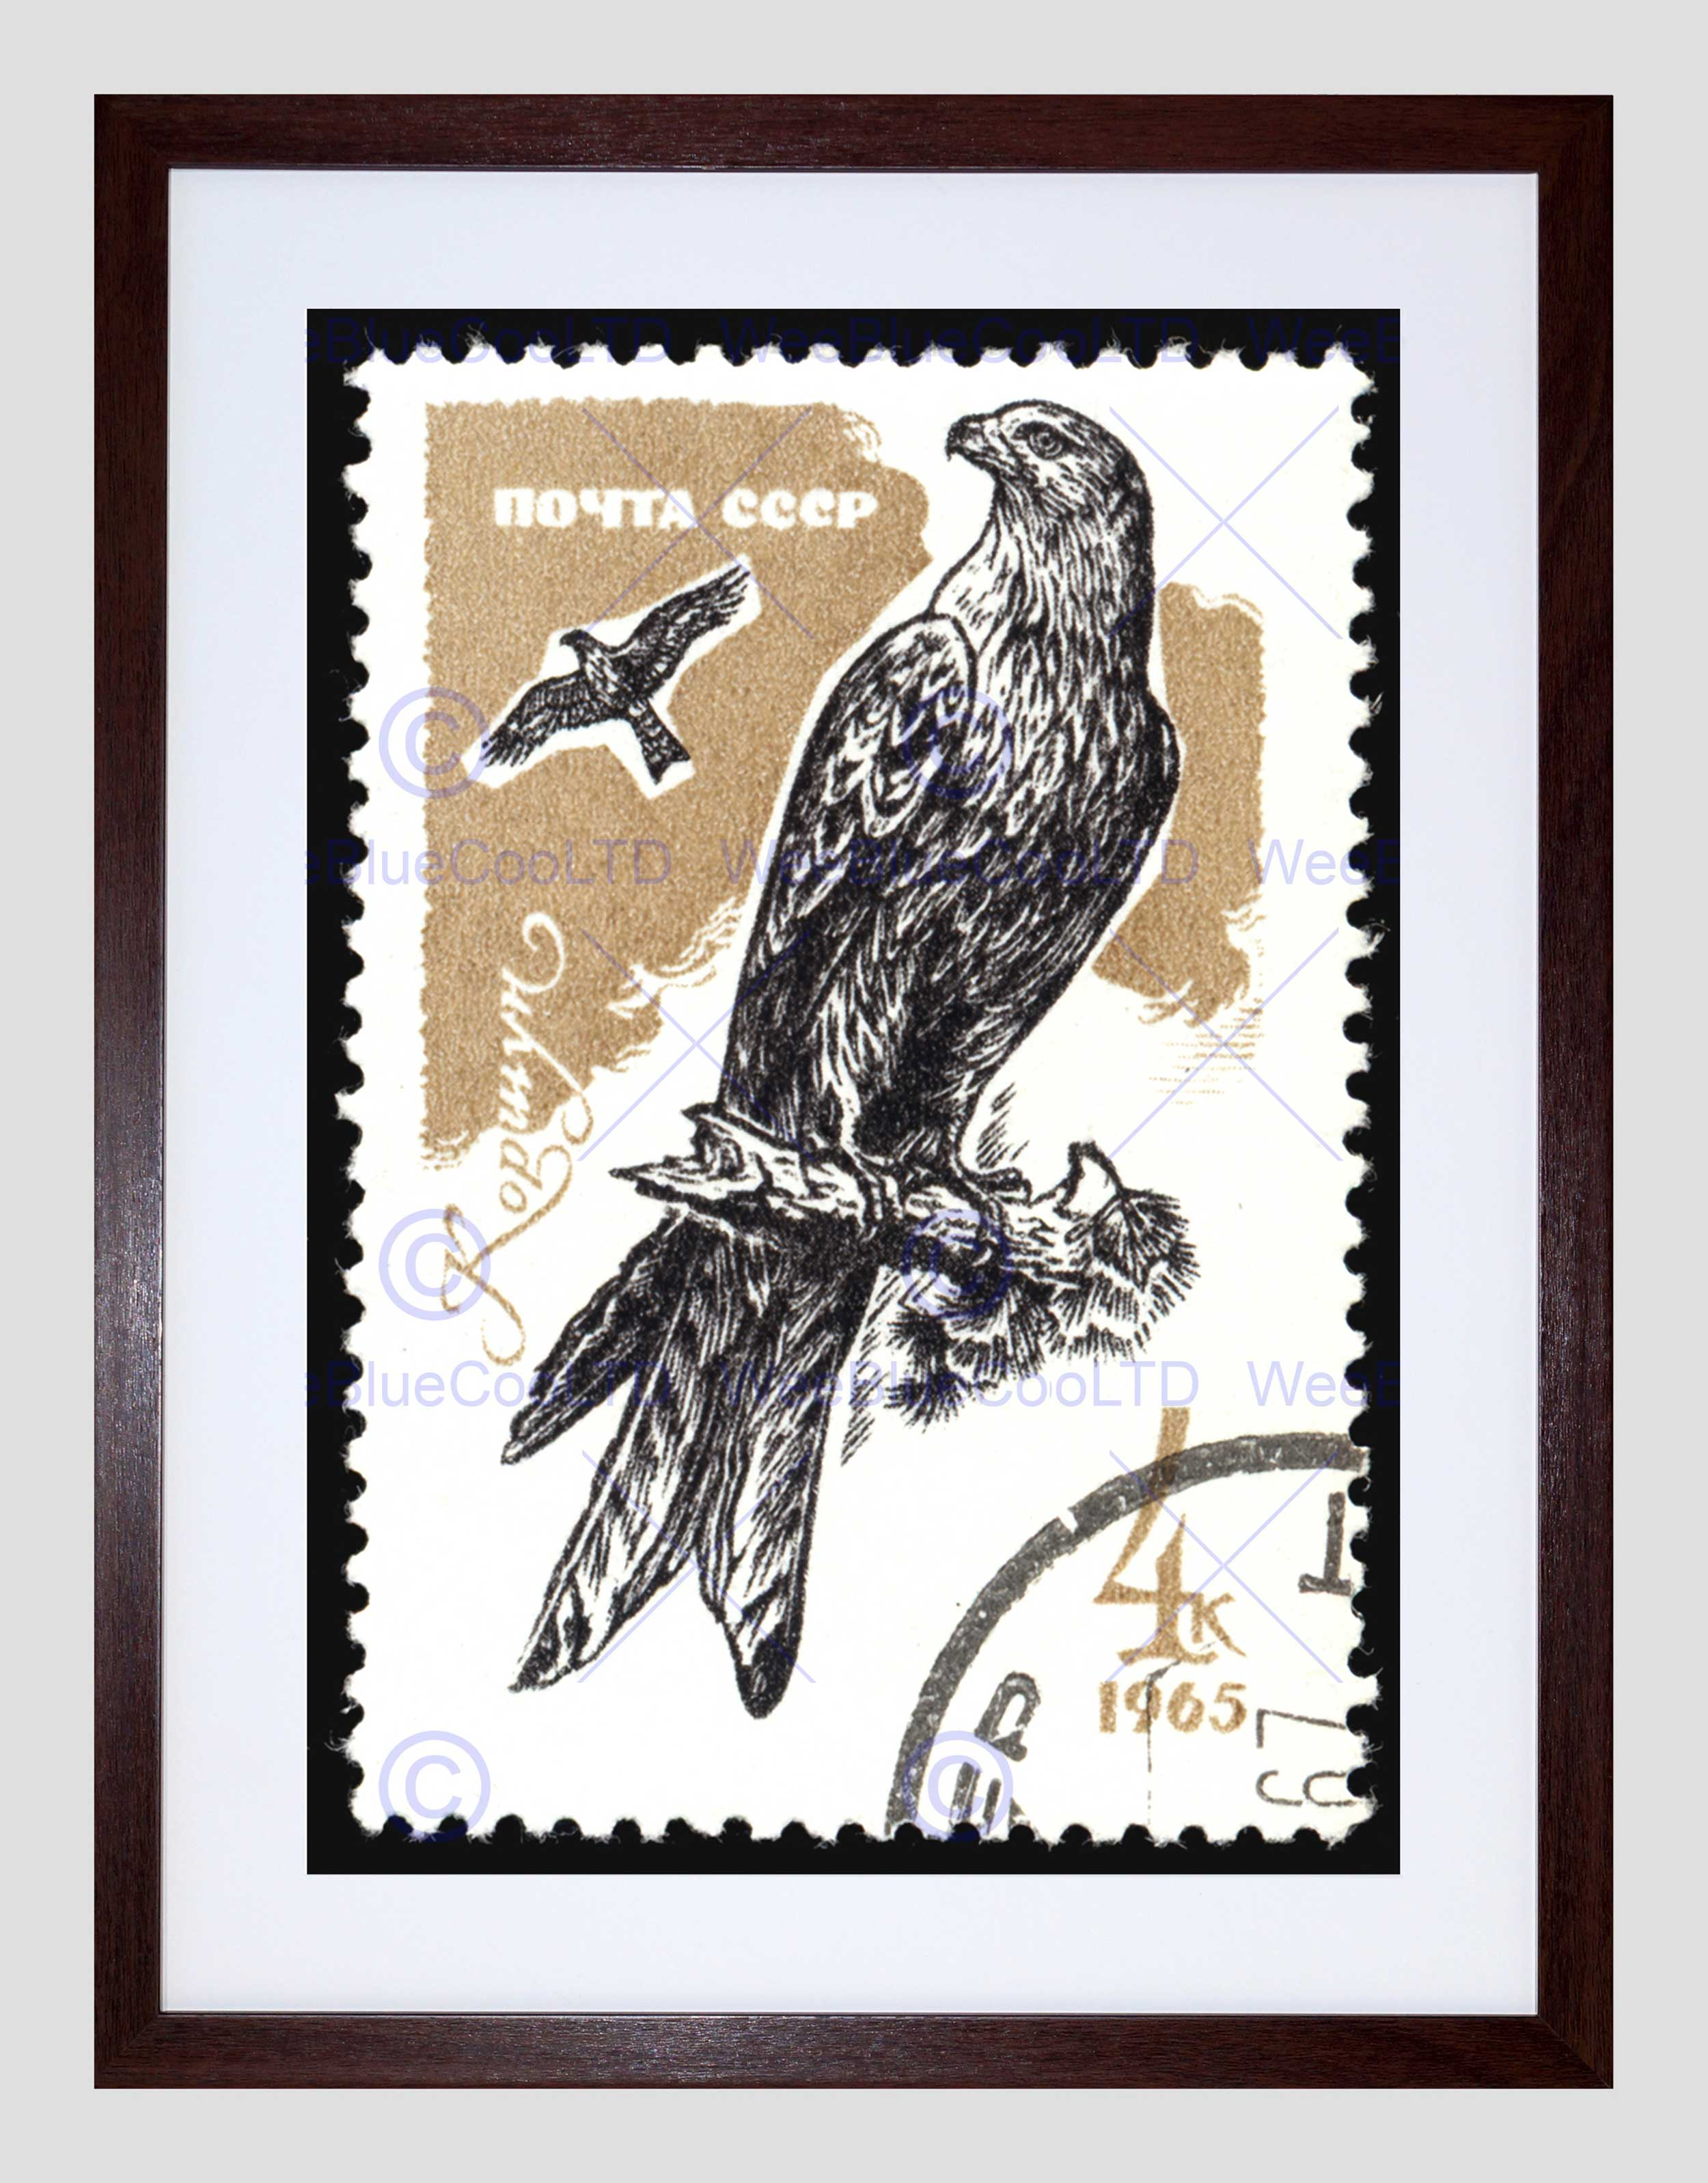 Postage USSR Soviet Stamp 1965 Falcon Bird Prey Framed Art Print ...